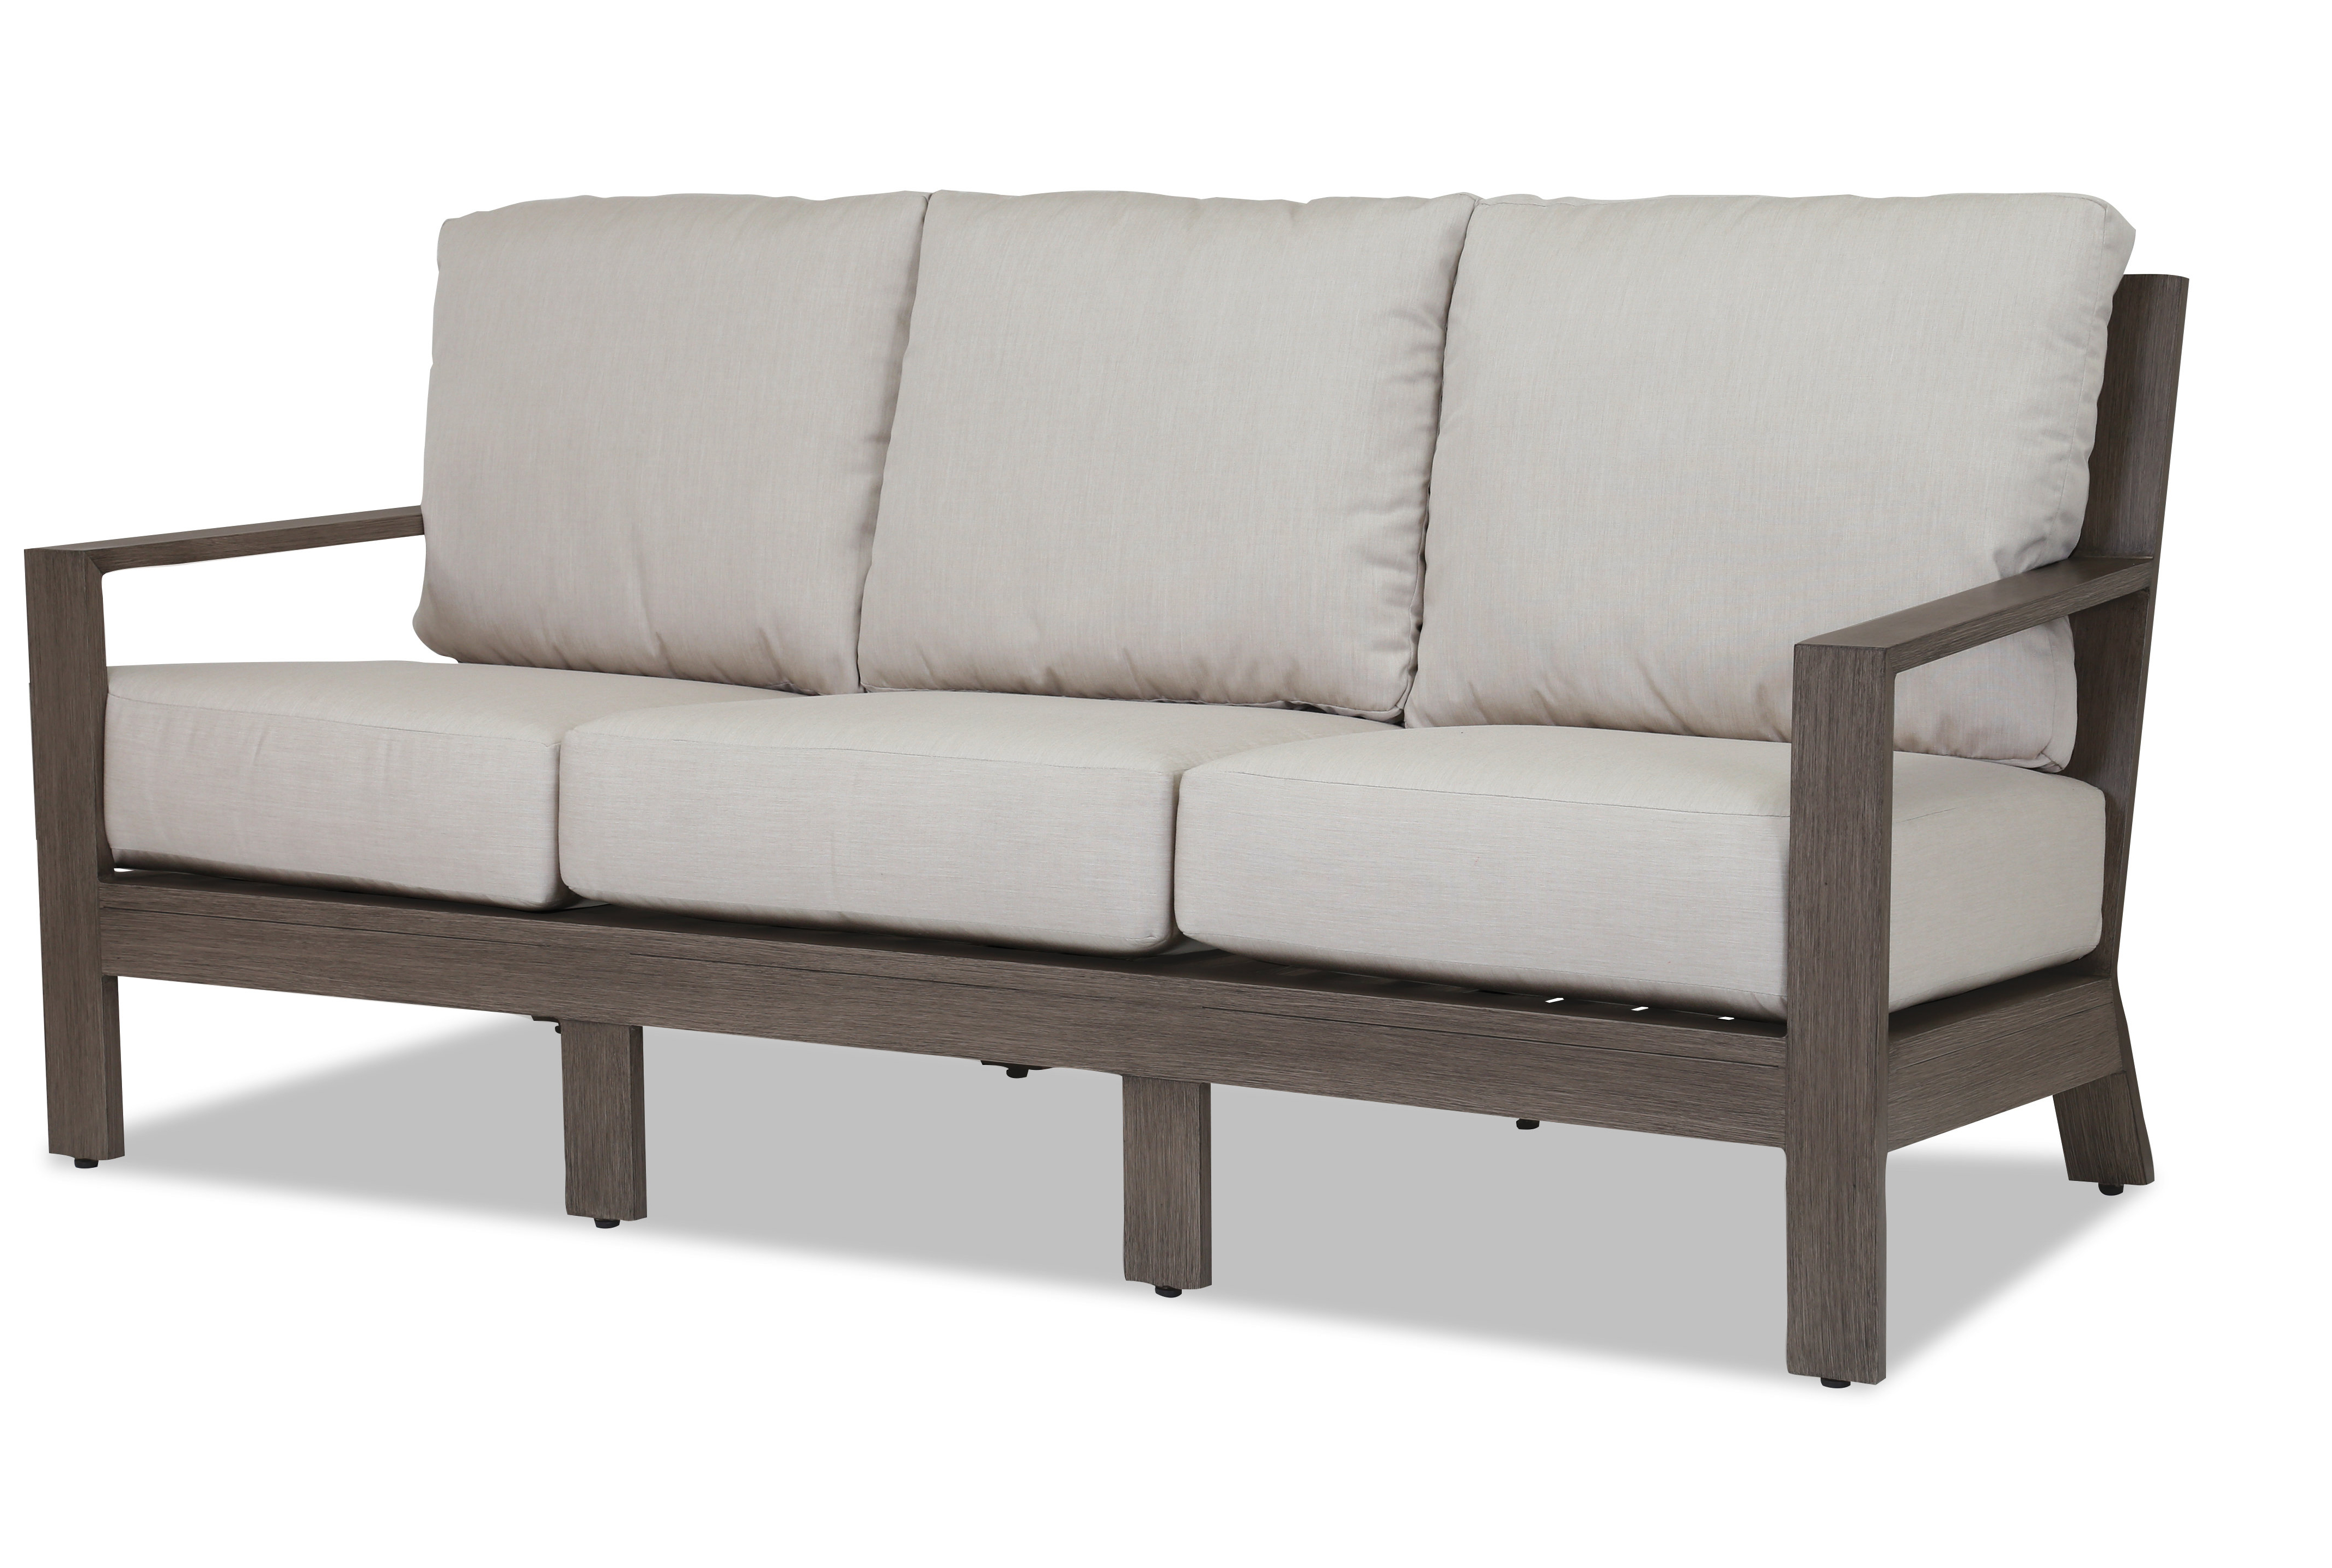 Well Known Laguna Patio Sofa With Sunbrella Cushions In Laguna Outdoor Sofas With Cushions (View 19 of 20)